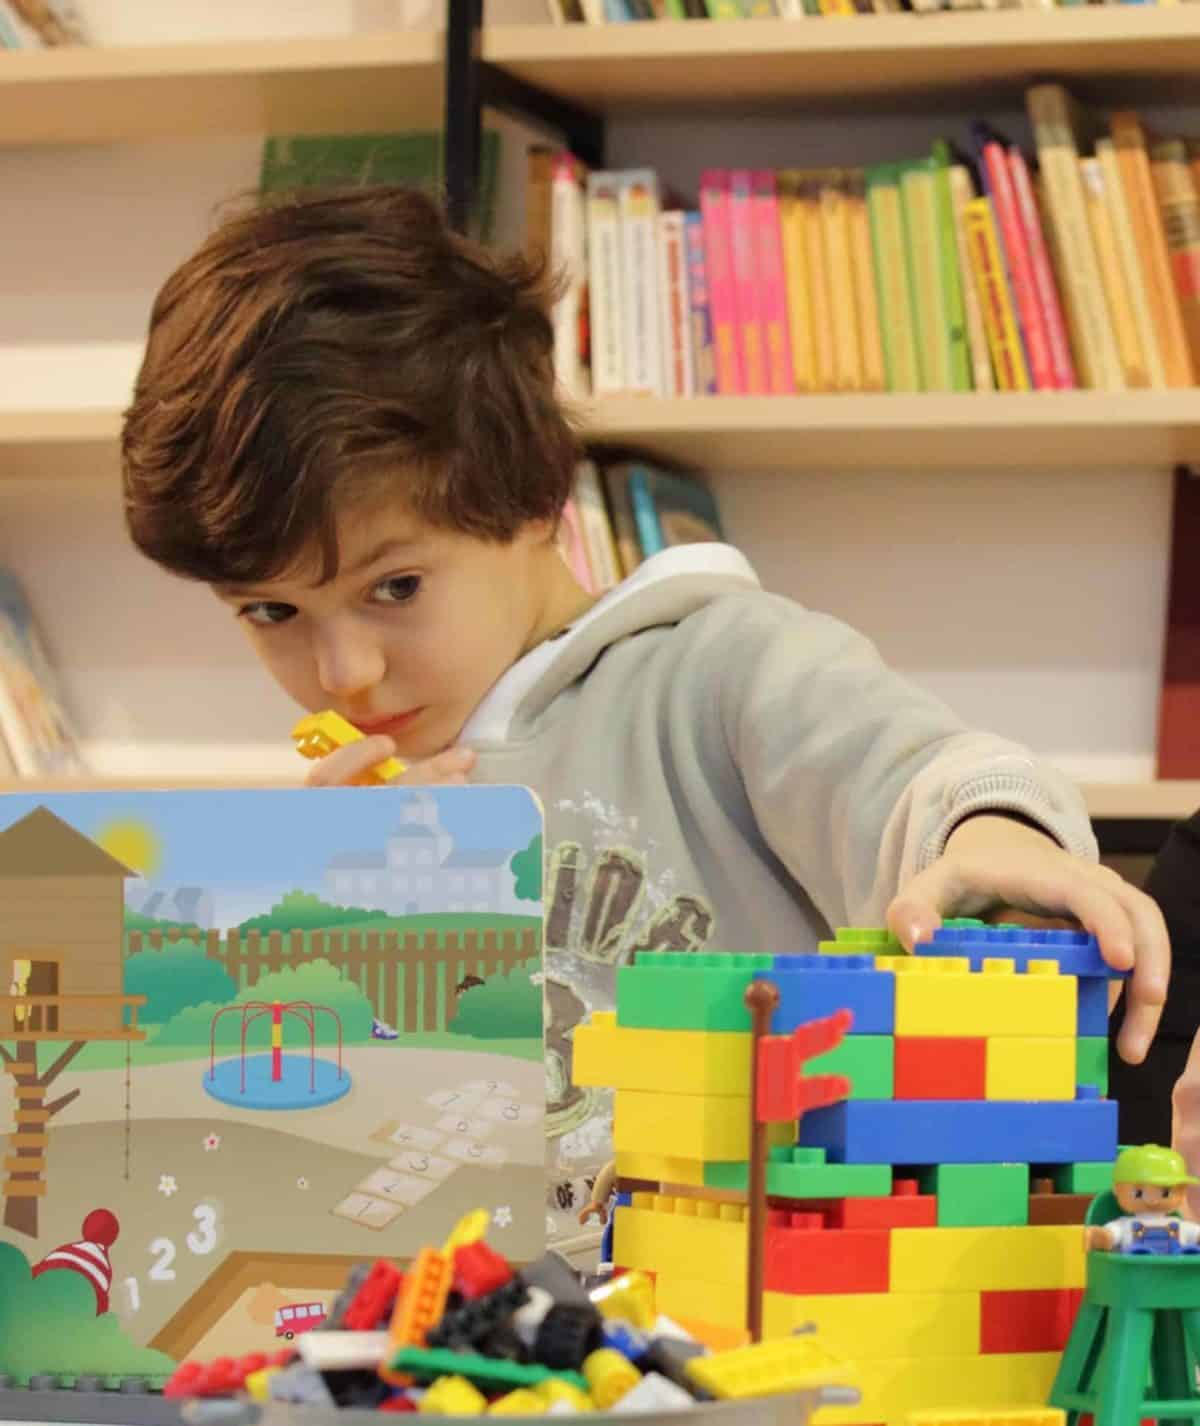 Are you looking for an educational toy gift that's really fun? LEGO is capable of boosting any child's intelligence while still being fun